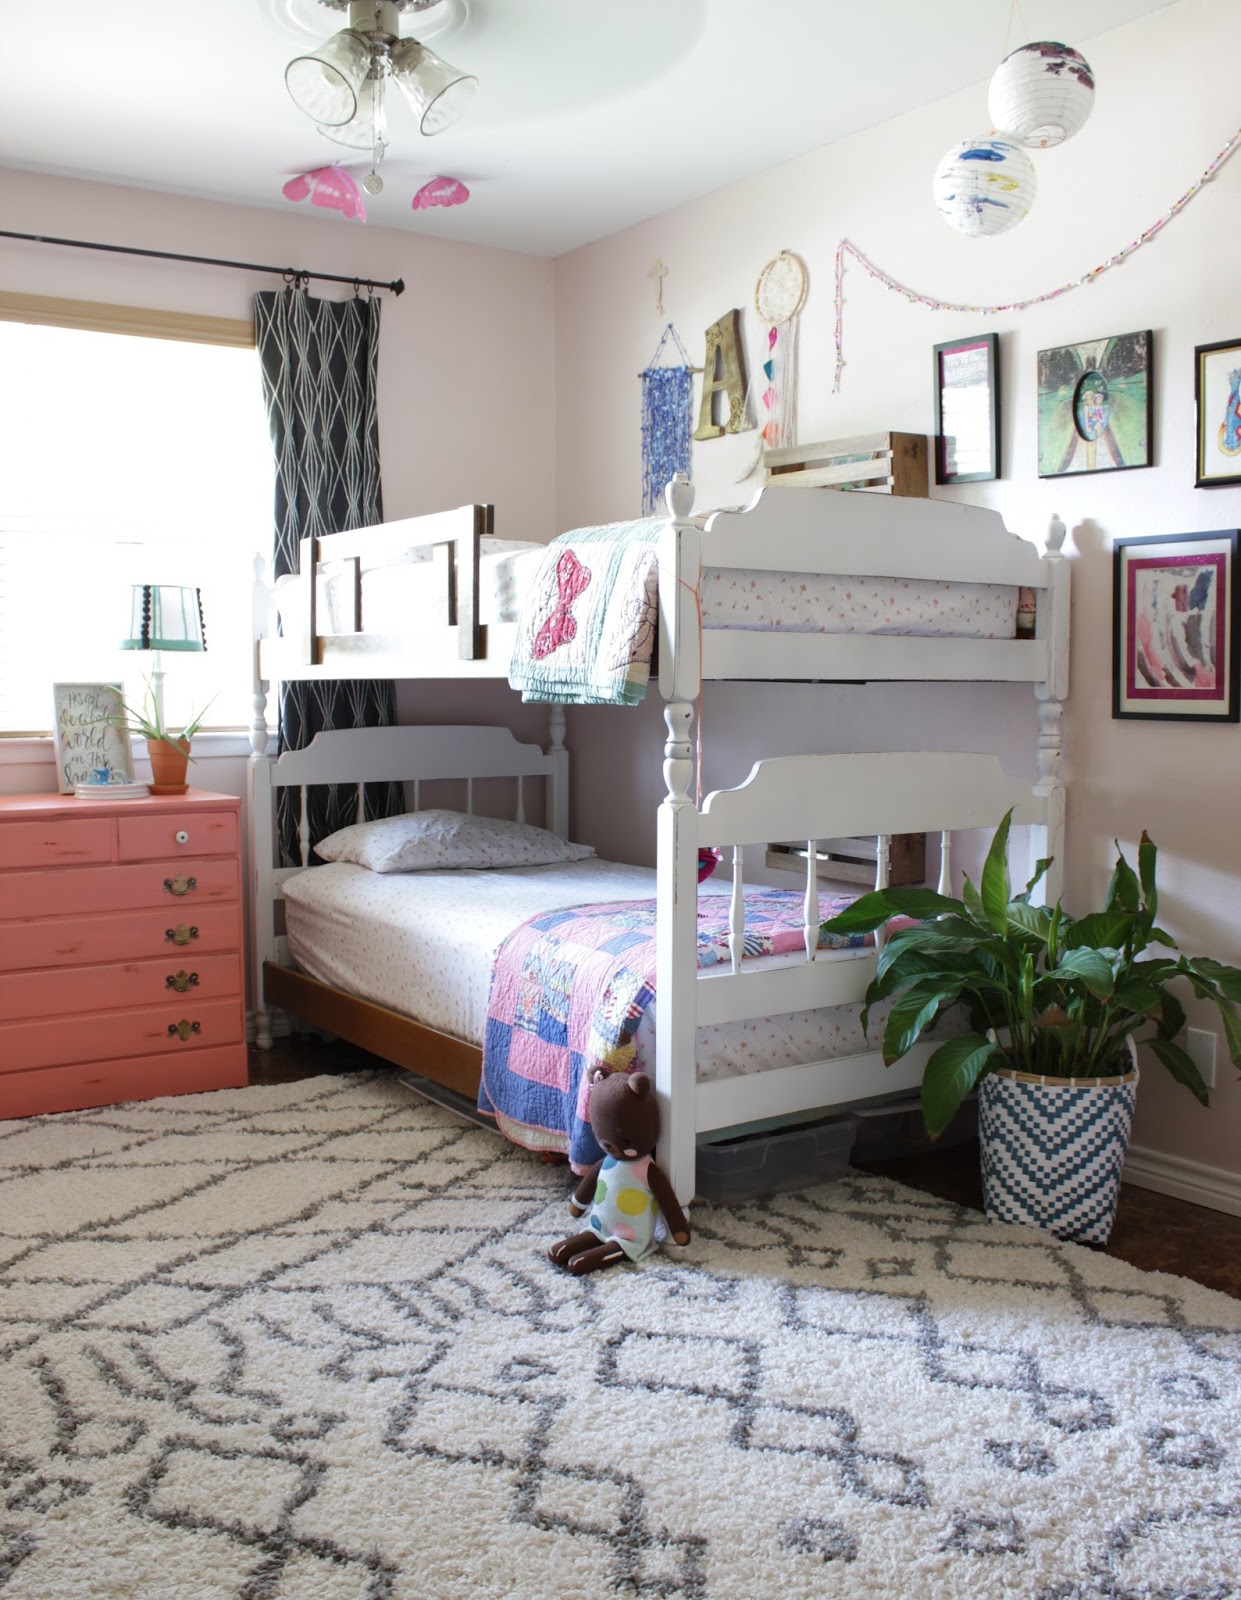 Before: Big kid's aqua dream room design | House Homemade